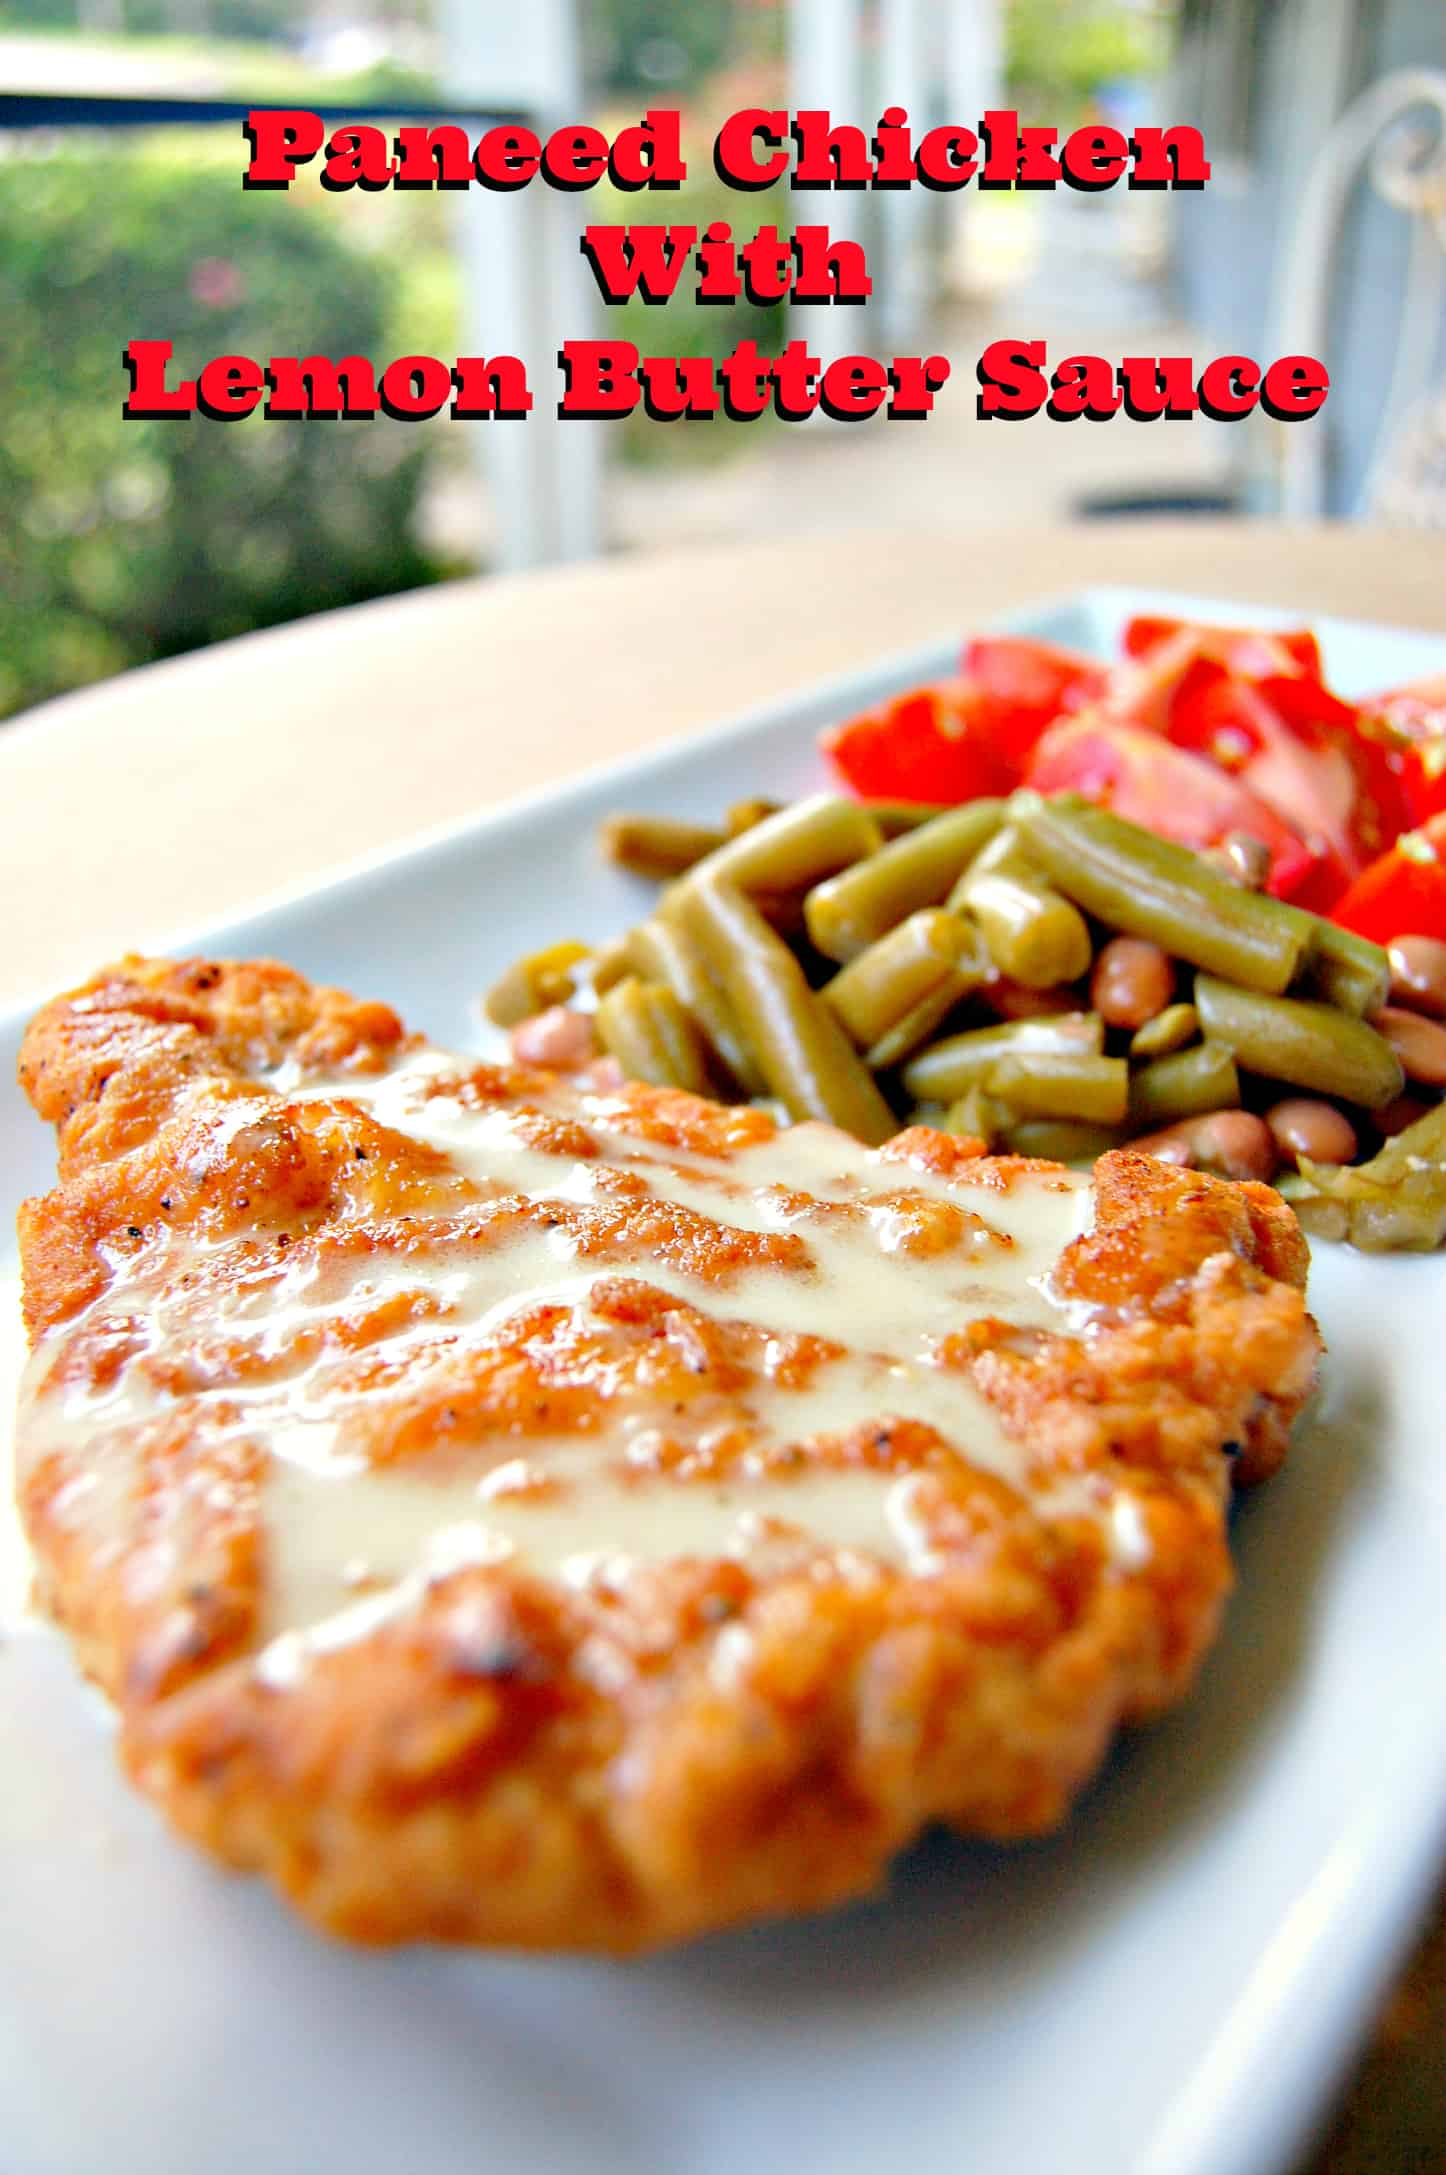 Paneed chicken with lemon butter sauce